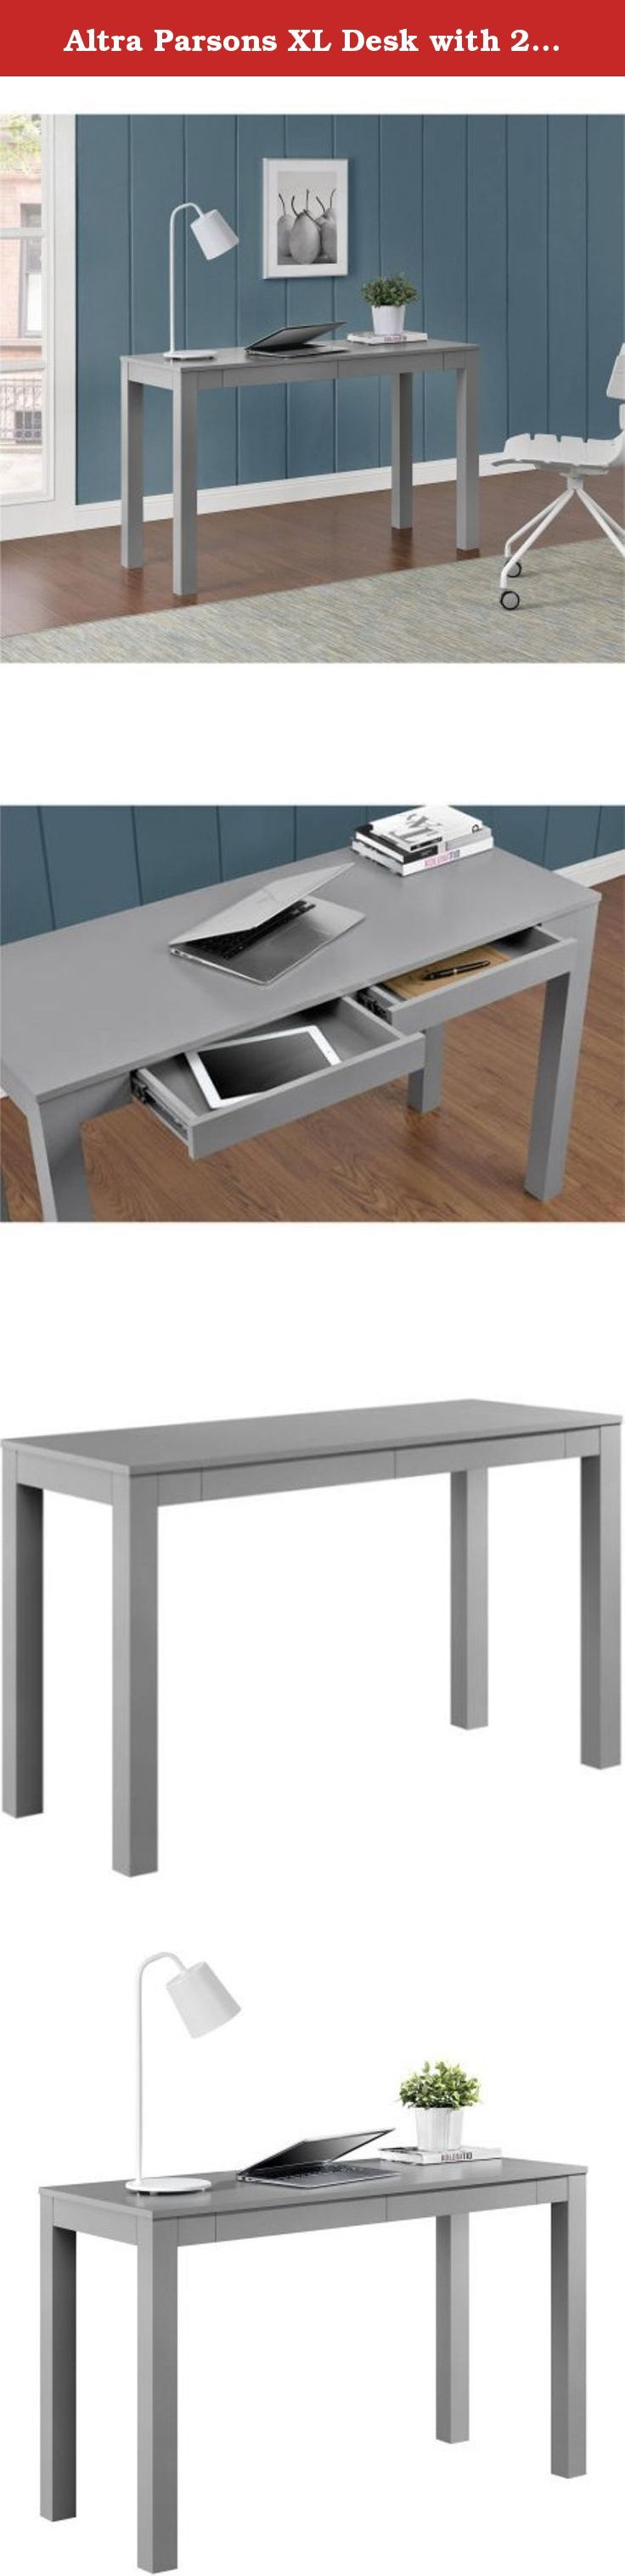 Altra Parsons XL Desk with 2 Drawers in Gray. Redefine your workspace or any room in your home with the sleek, minimalist lines of this attractive Altra Parsons XL Desk with Two Drawers.